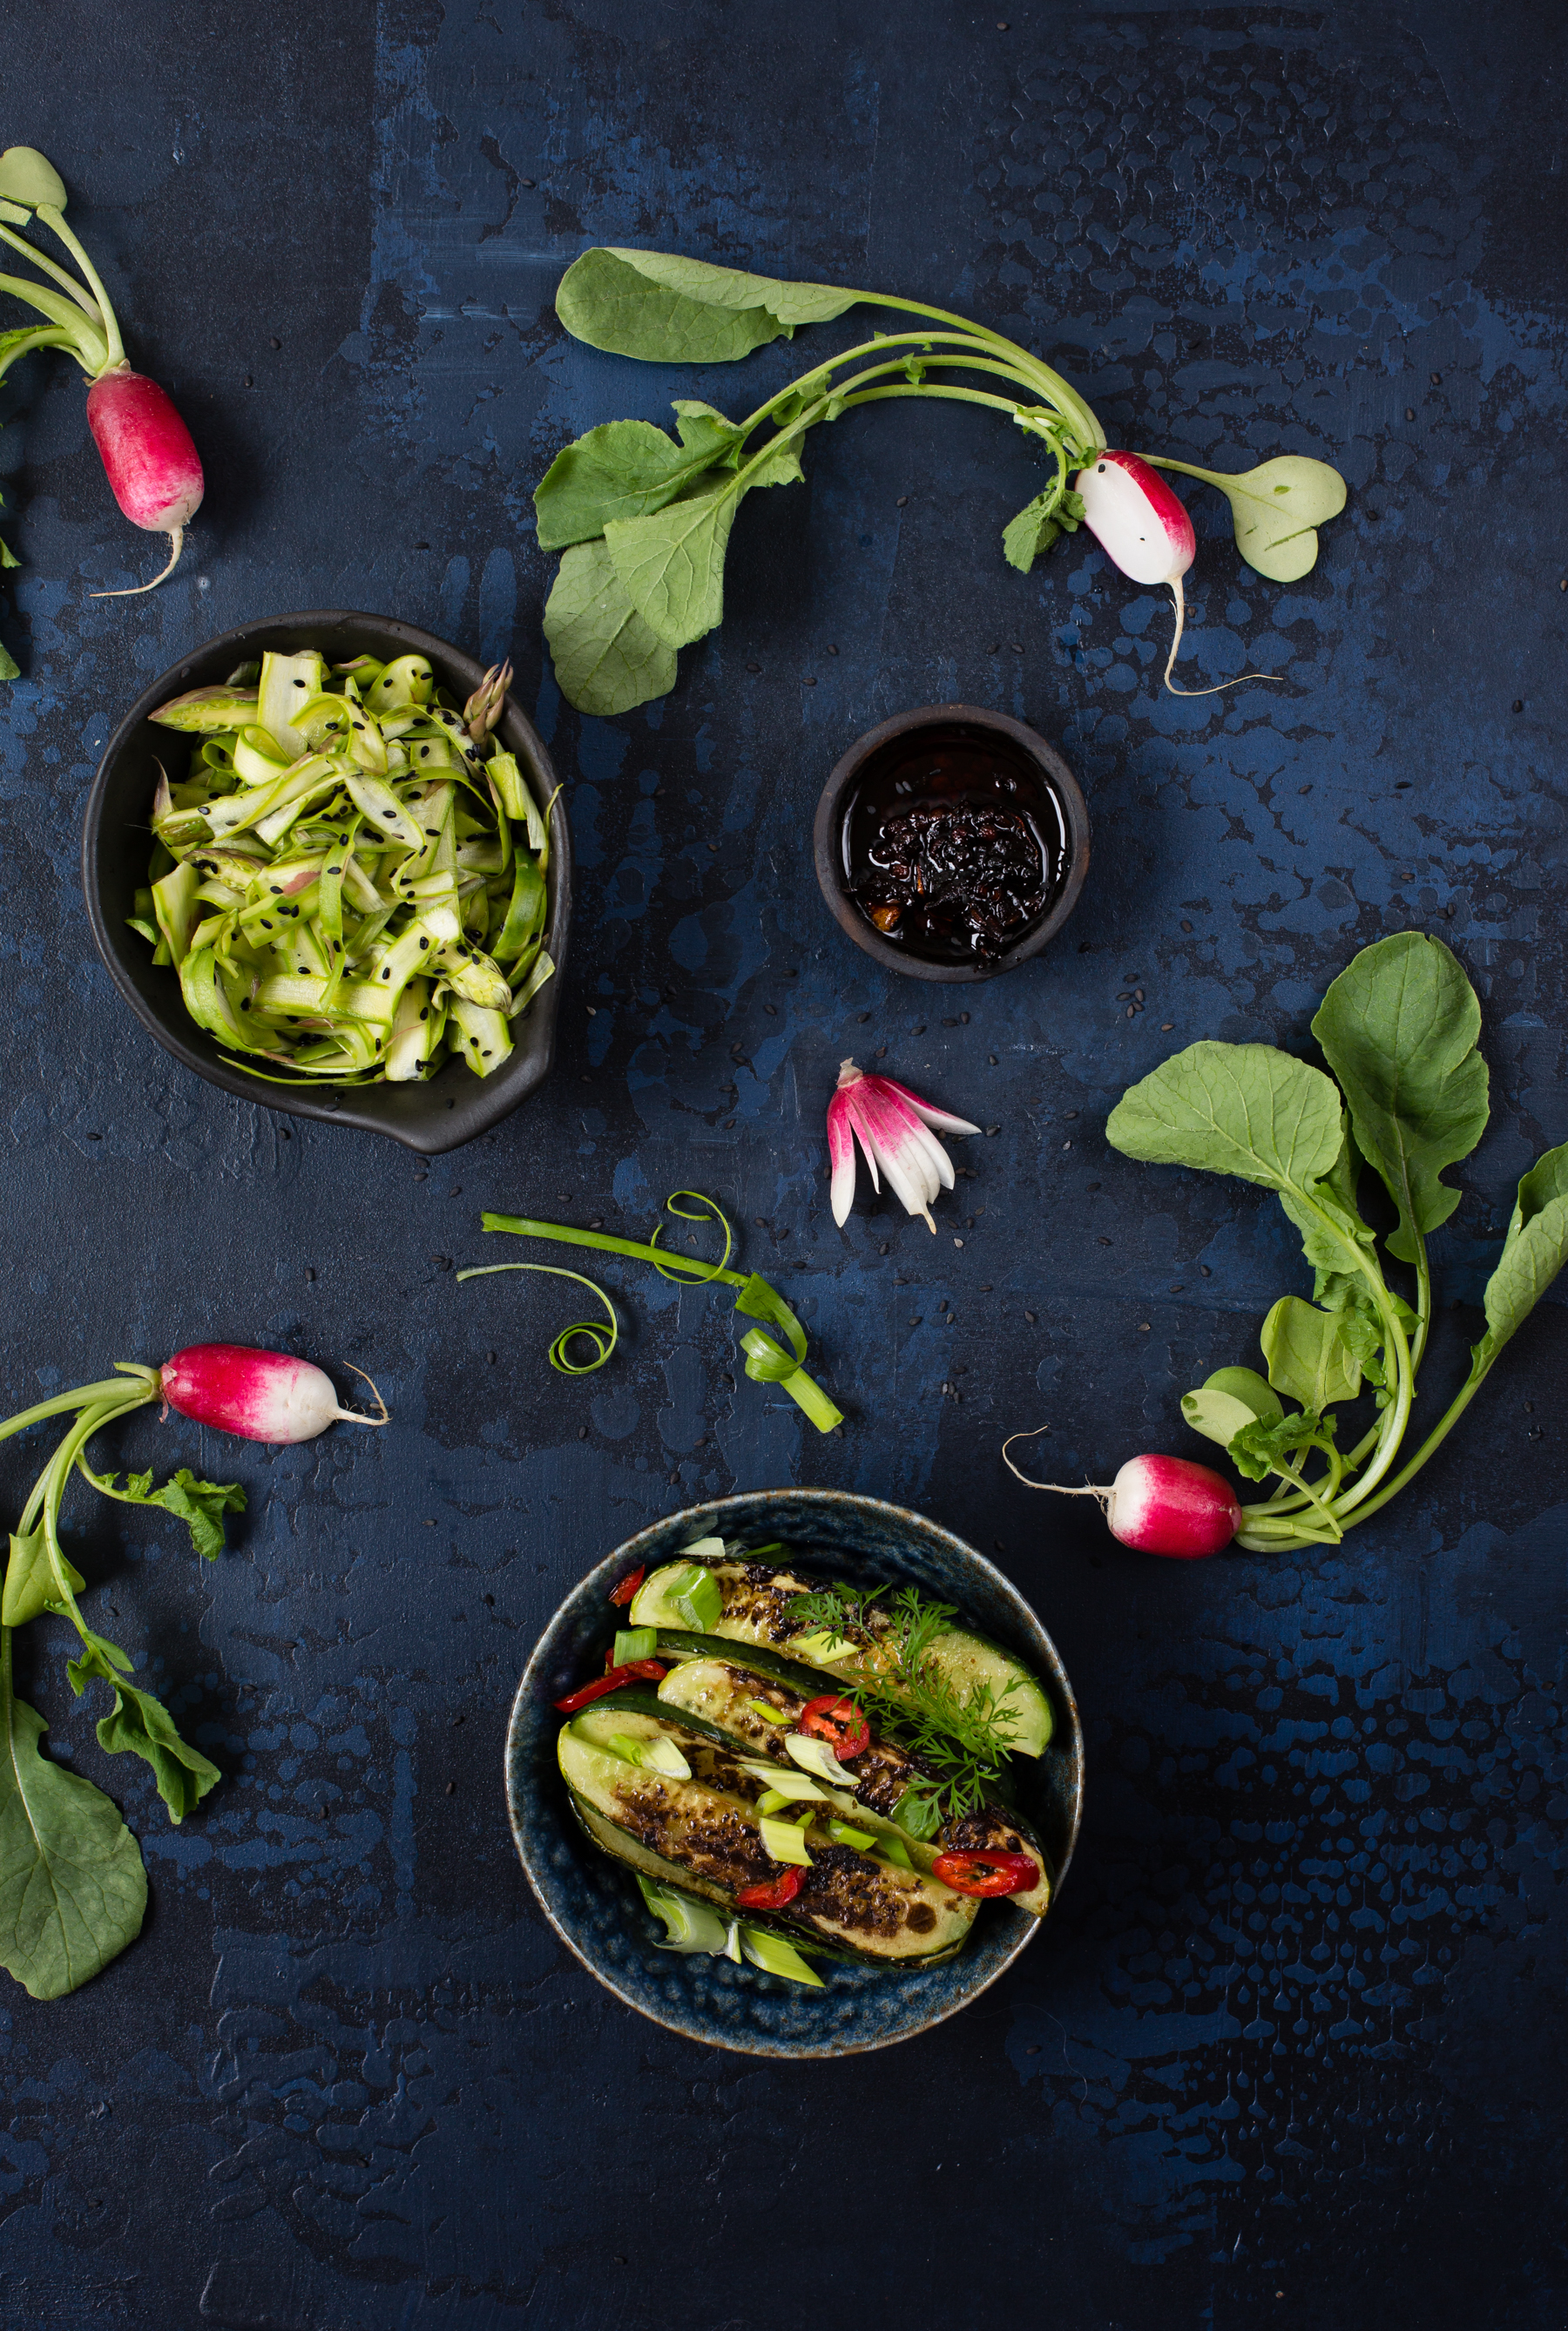 Pickled asparagus, grilled finnish cucumbers and radishes